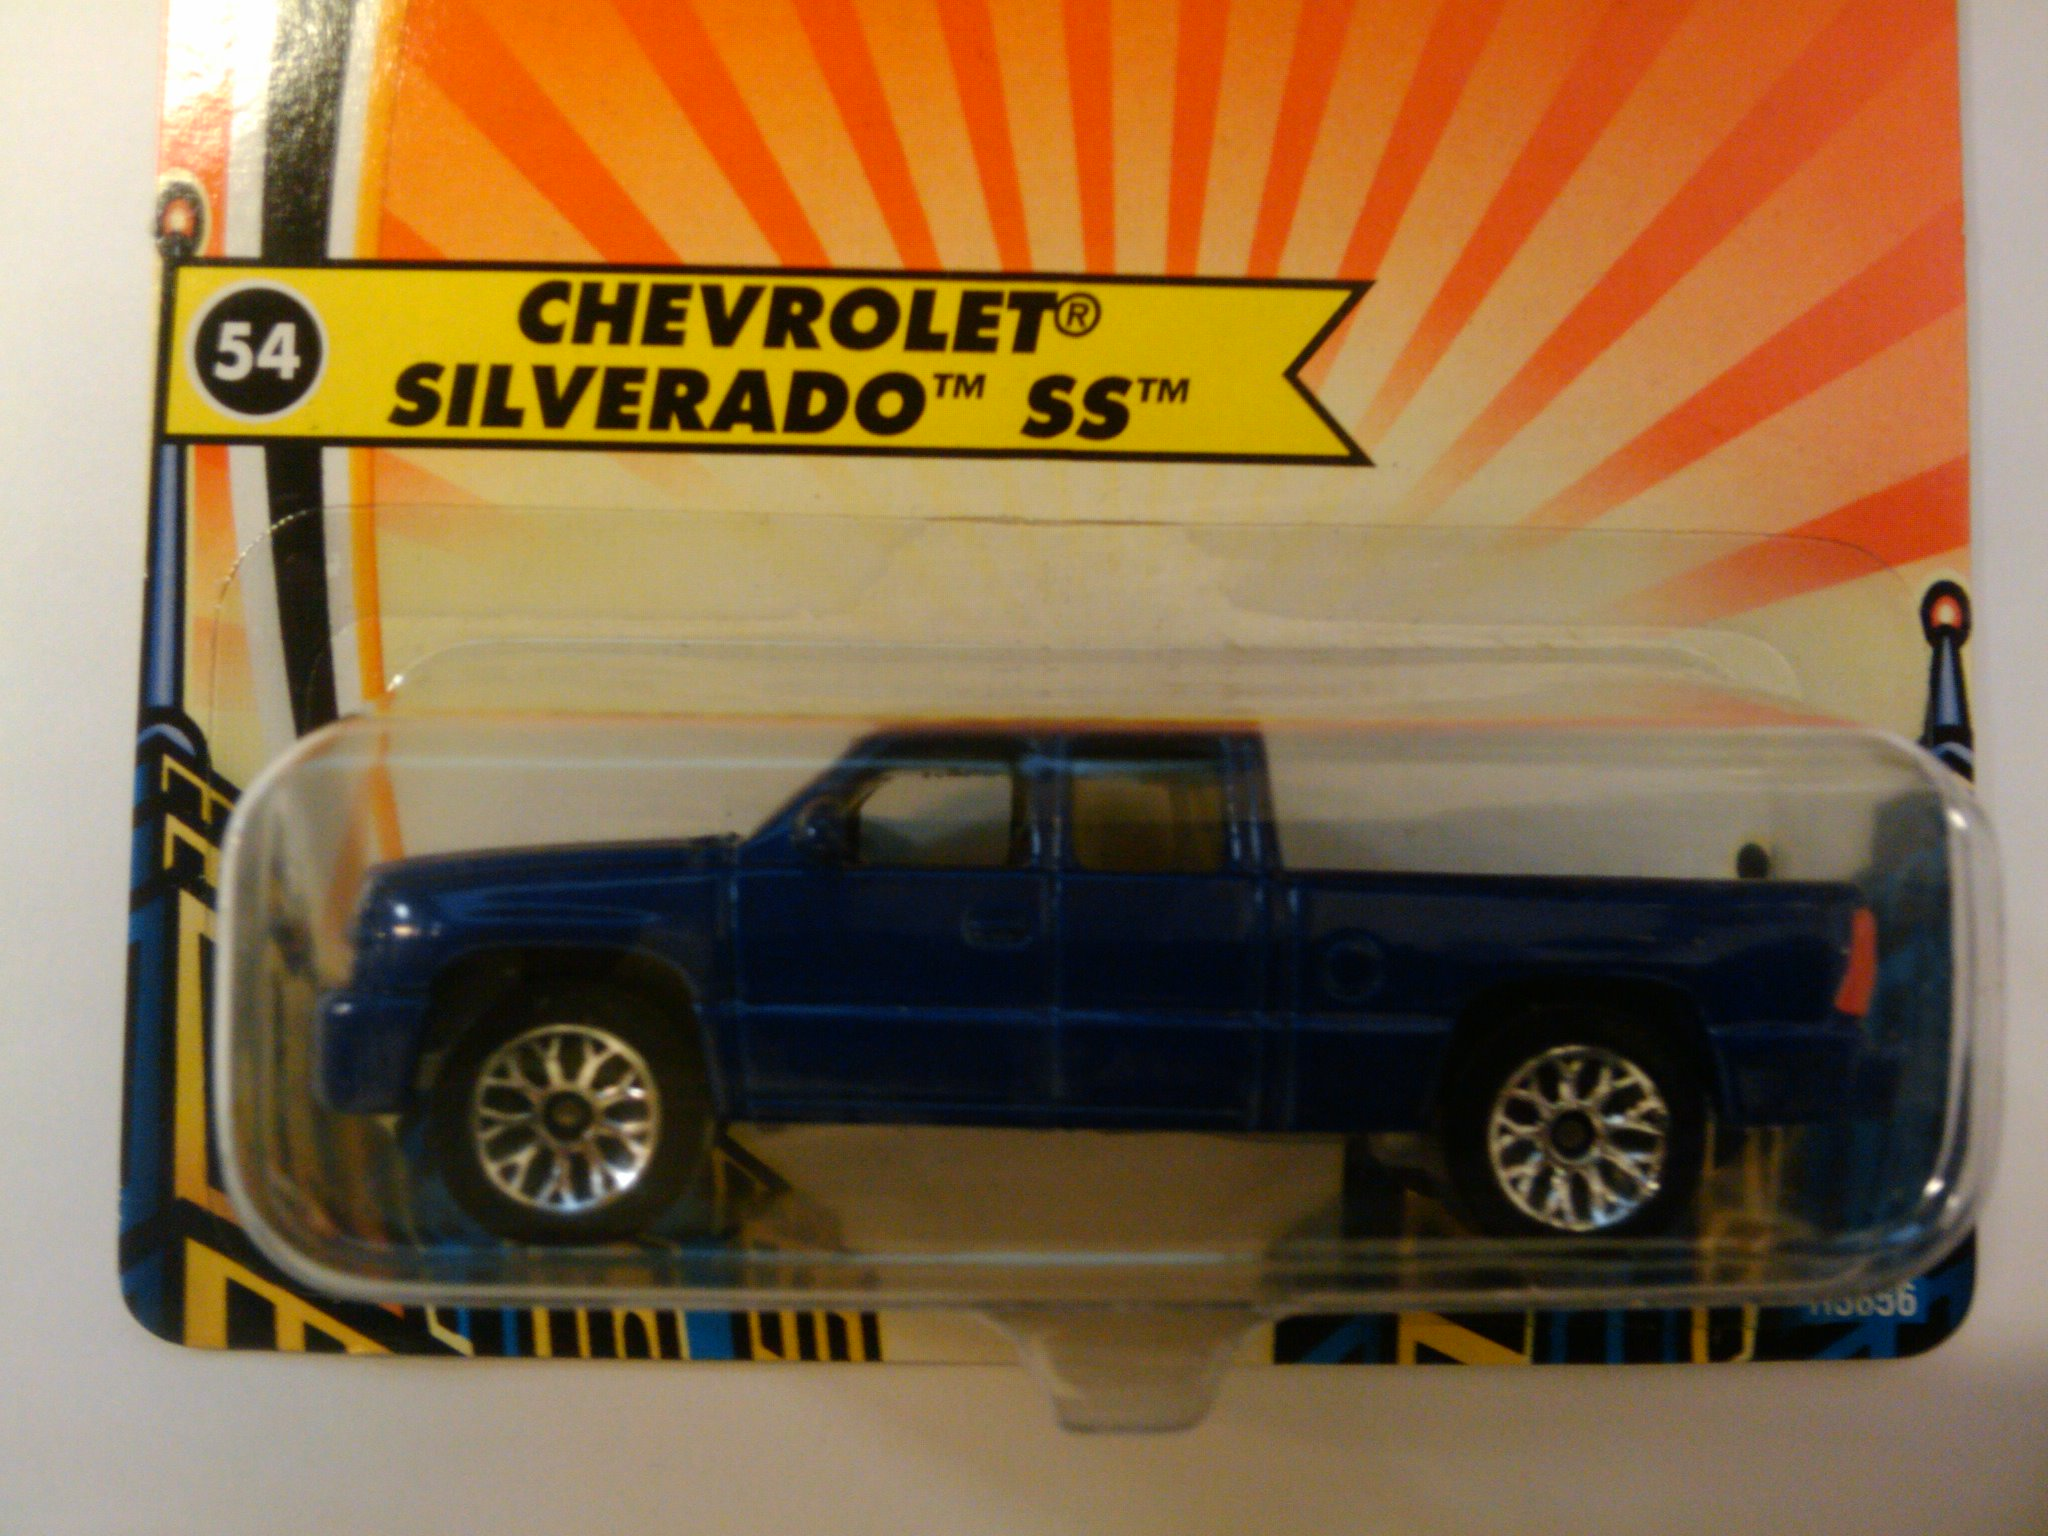 posted ss sss topic only chevy awd silverado image forums supercharged chevrolet gallery vhos